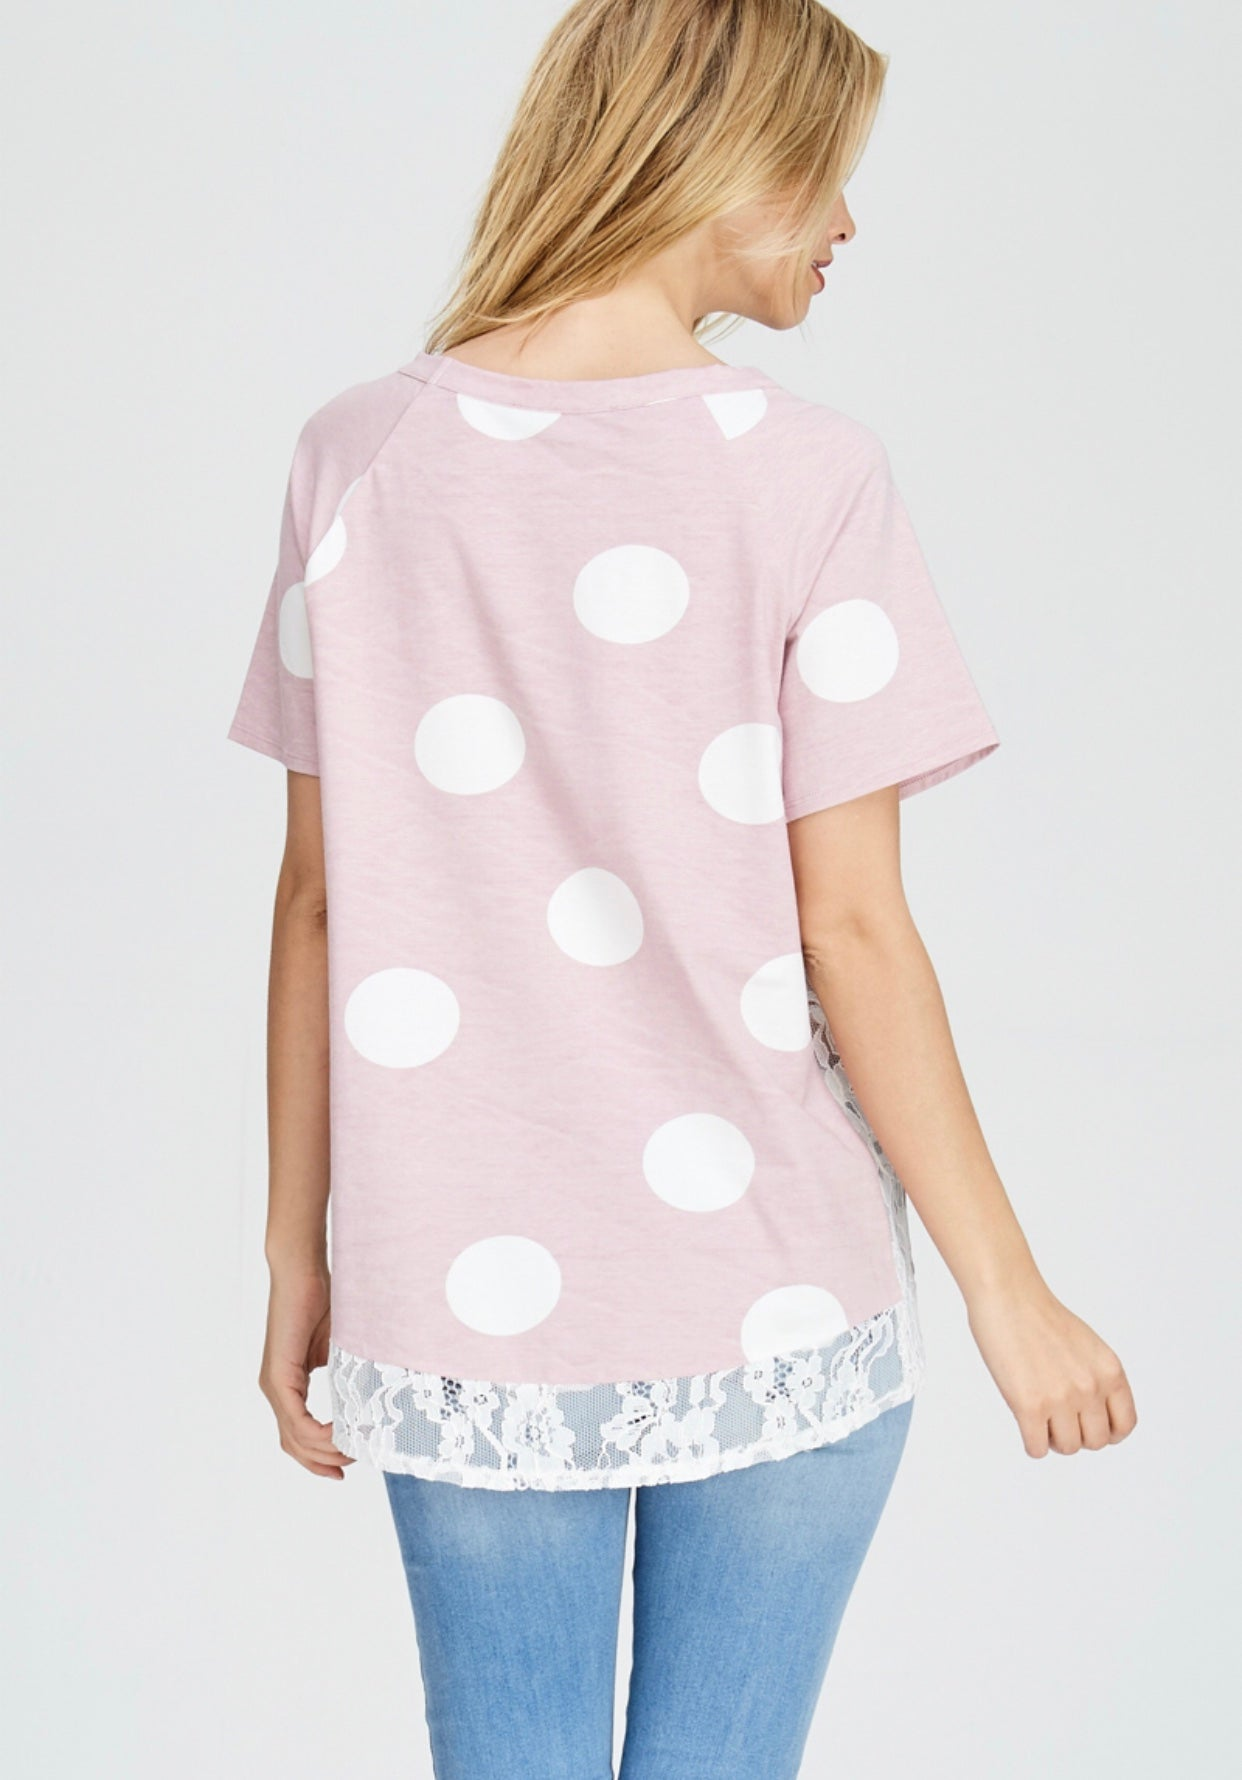 Pink Polka Dot Top with Lace